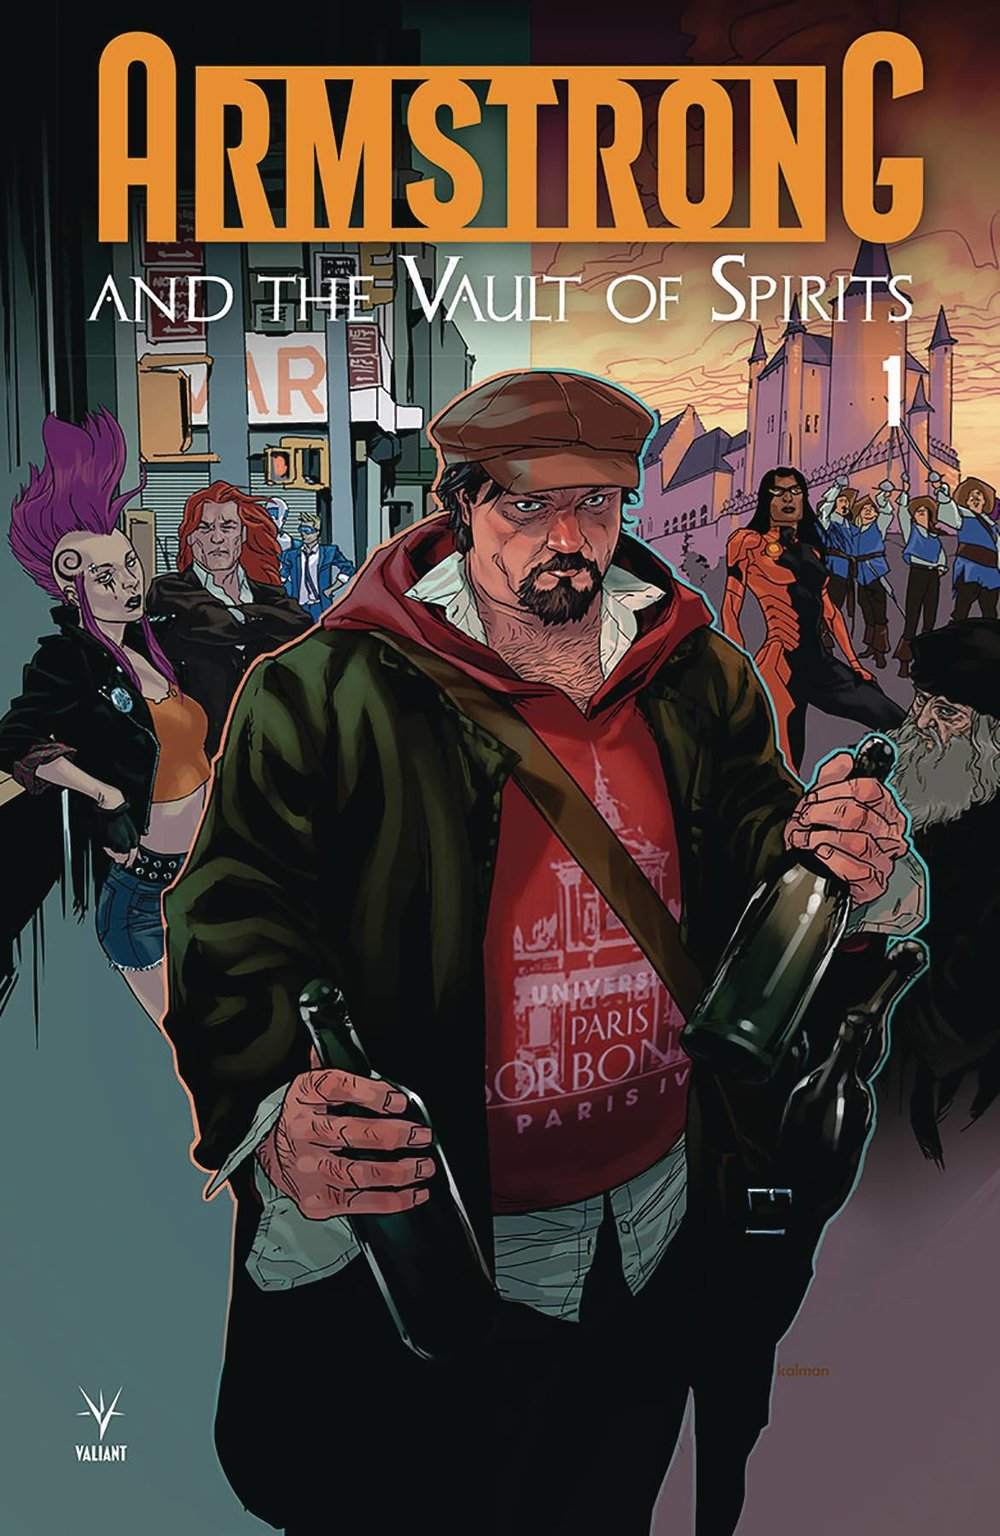 ARMSTRONG & THE VAULT OF SPIRITS 1 CVR A ANDRASOFSZKY (ONE SHOT).jpg